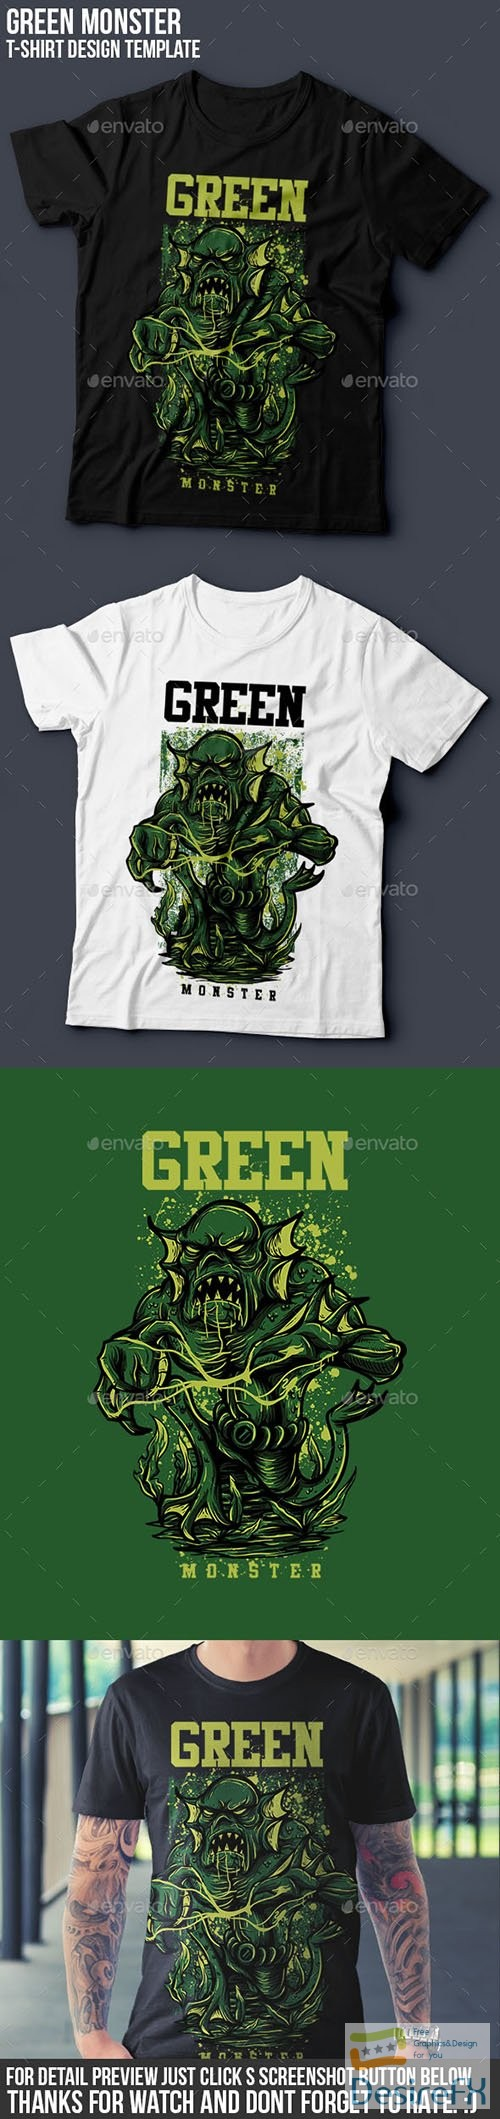 t-shirts-prints - Green Monster T-Shirt Design 14496421